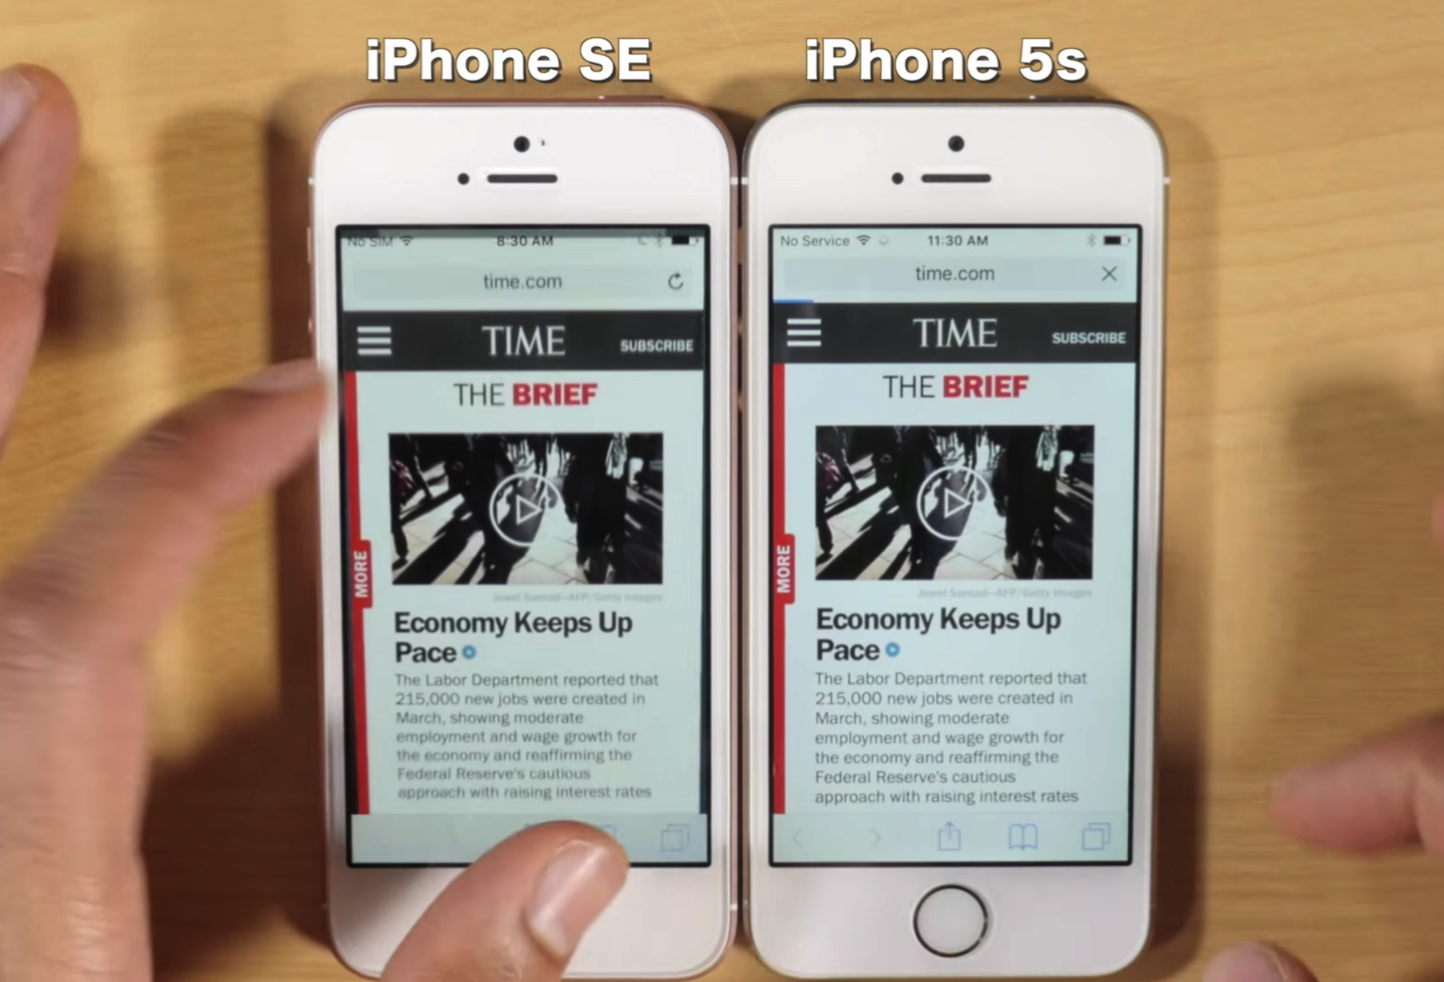 iphonese-vs-iphone5s-ram-comparison-3.png